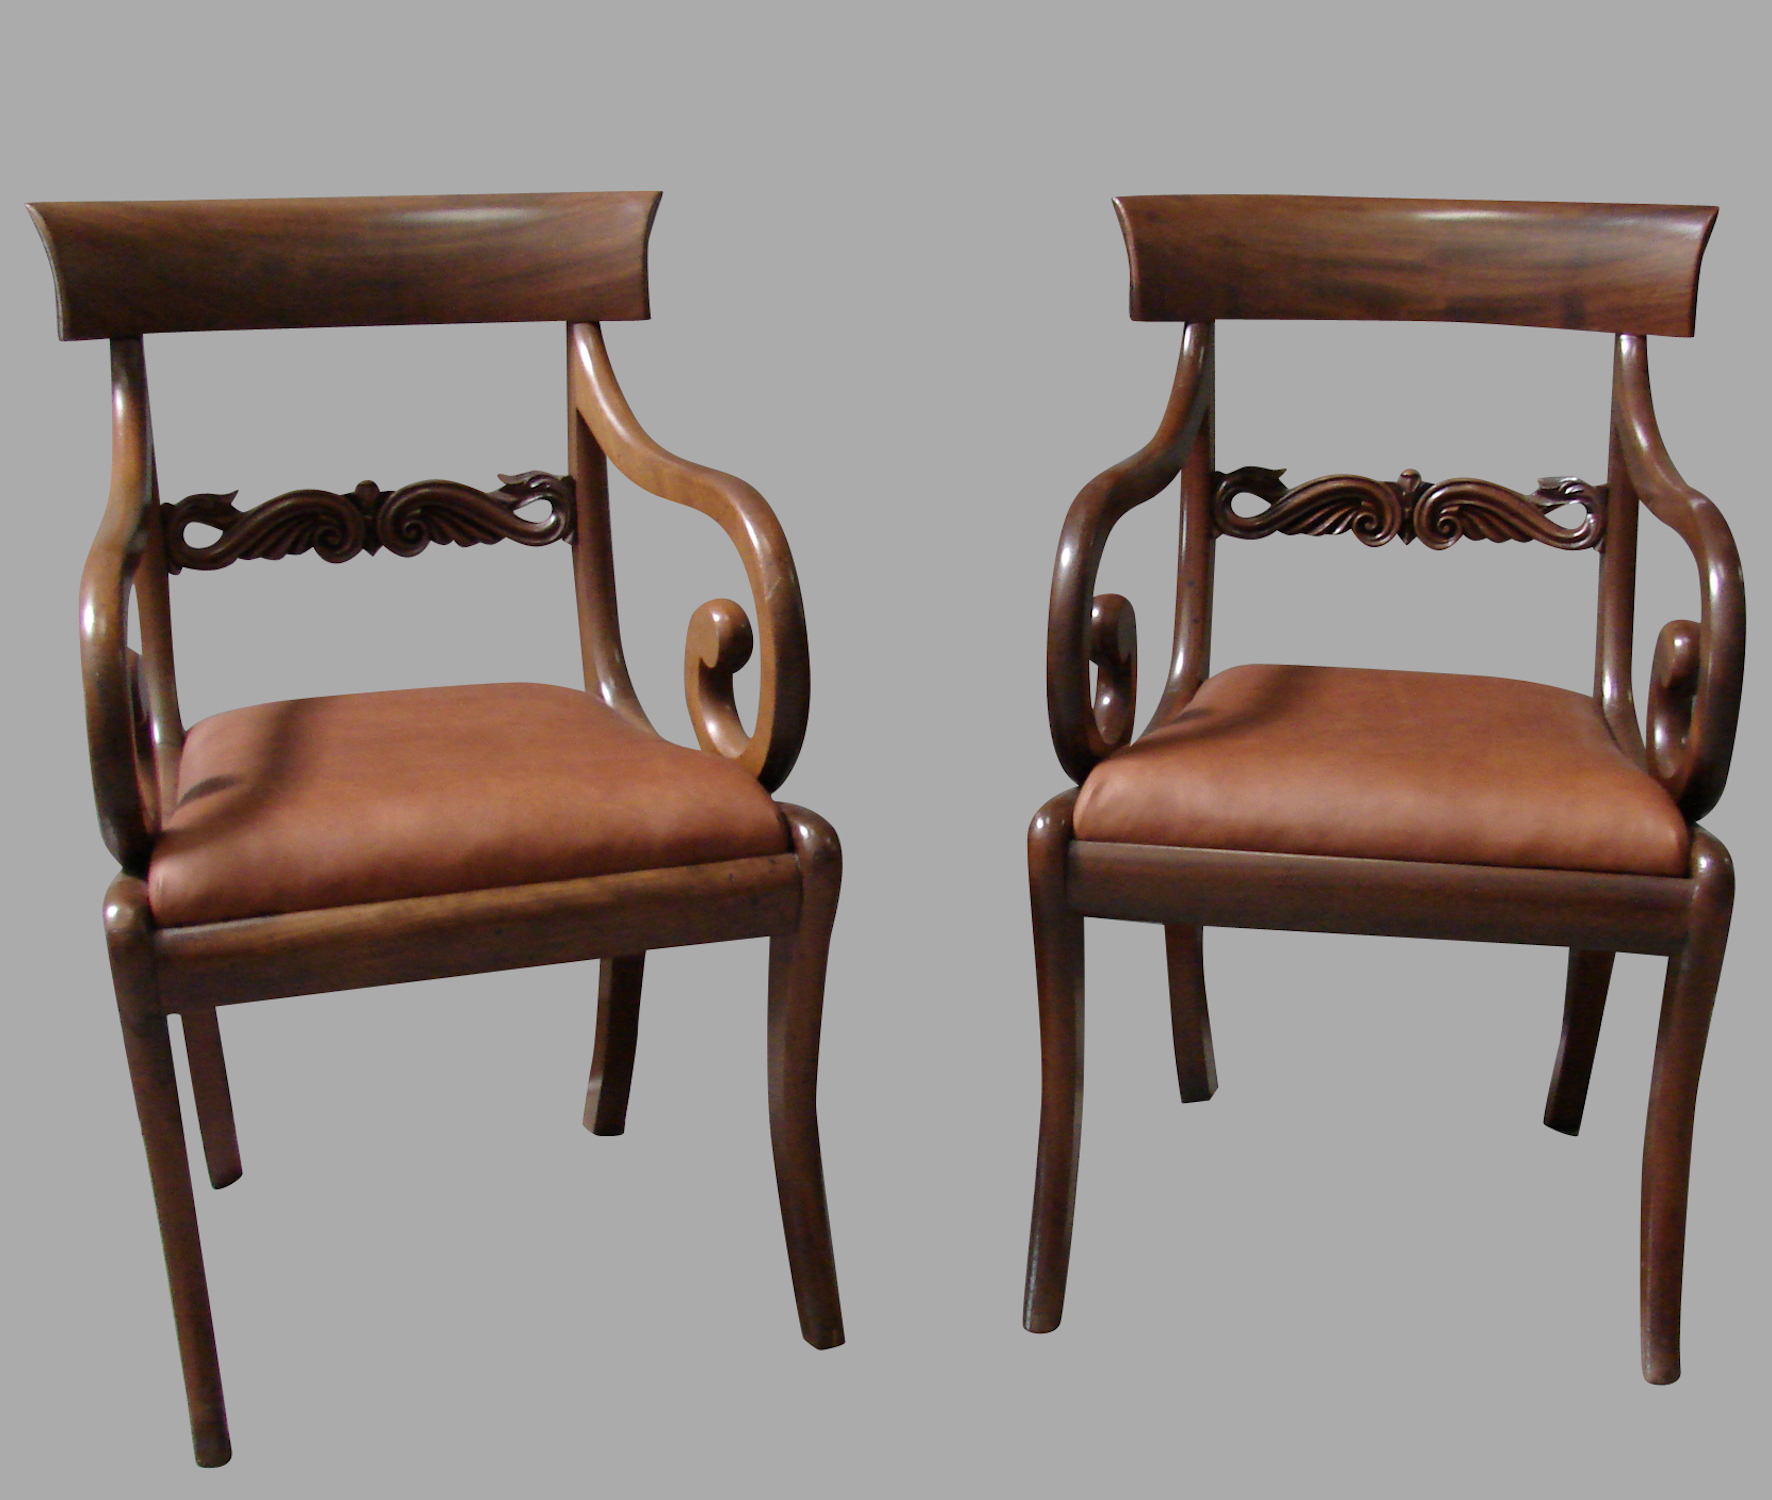 Regency Mahogany Arm Chairs | DANIEL STEIN Antiques San Francisco CA